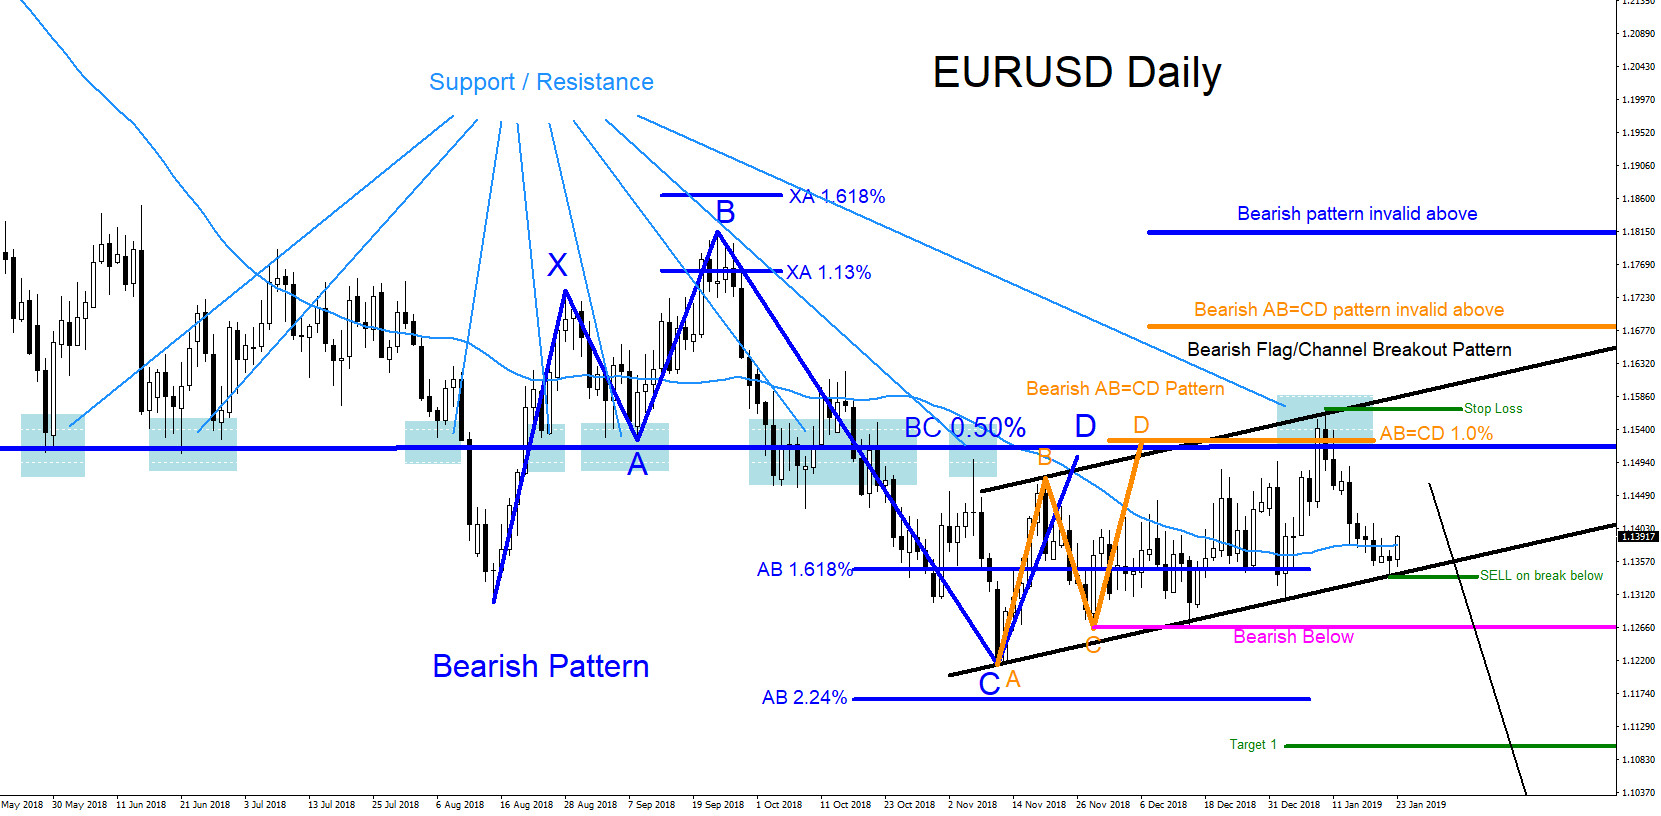 EURUSD, forex, technical analysis, bearish, patterns, elliottwave, elliott wave